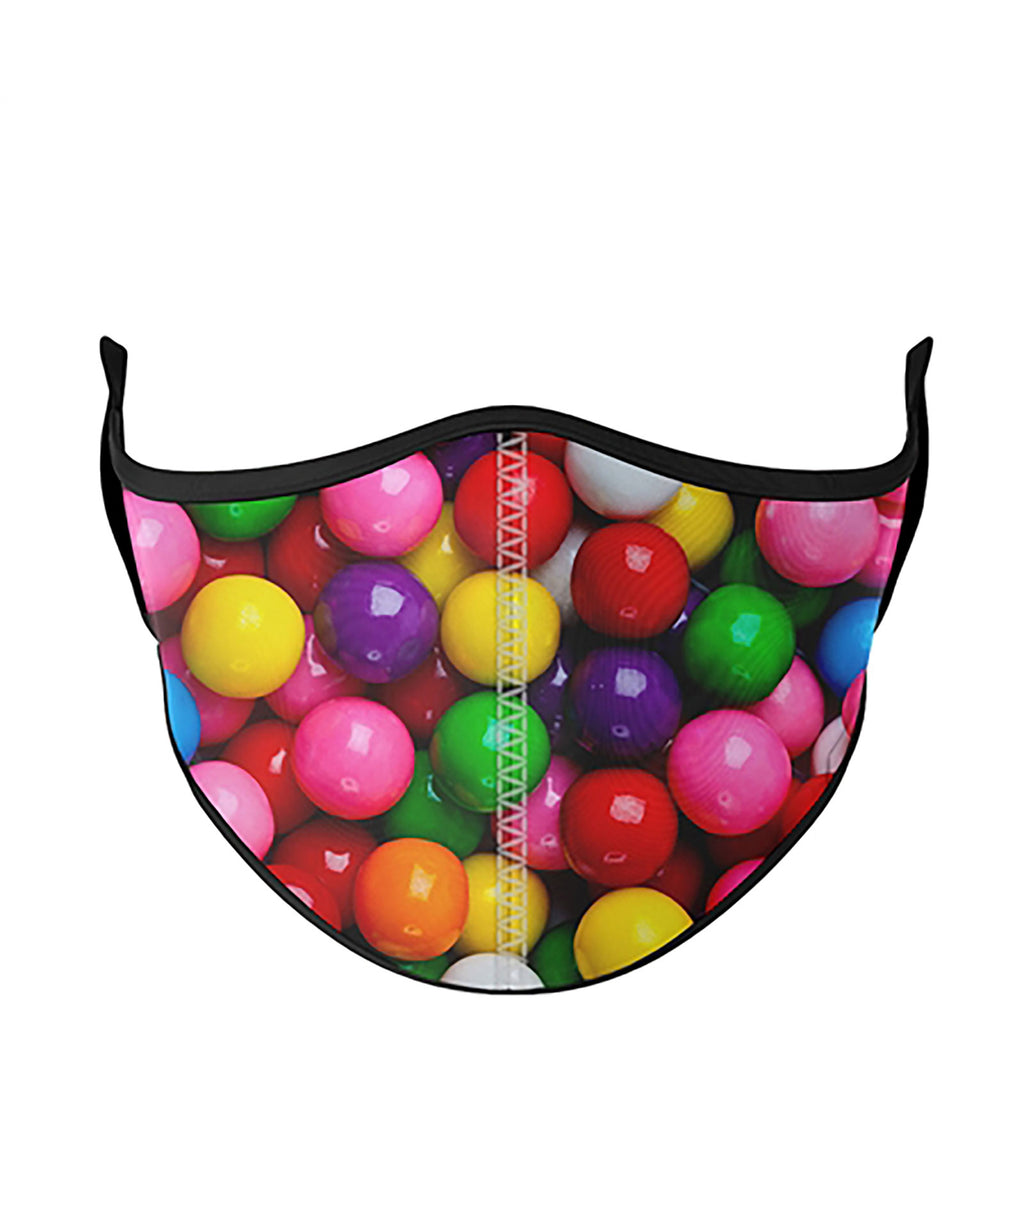 Top Trenz Gumball Children Ages 3-7 Face Mask